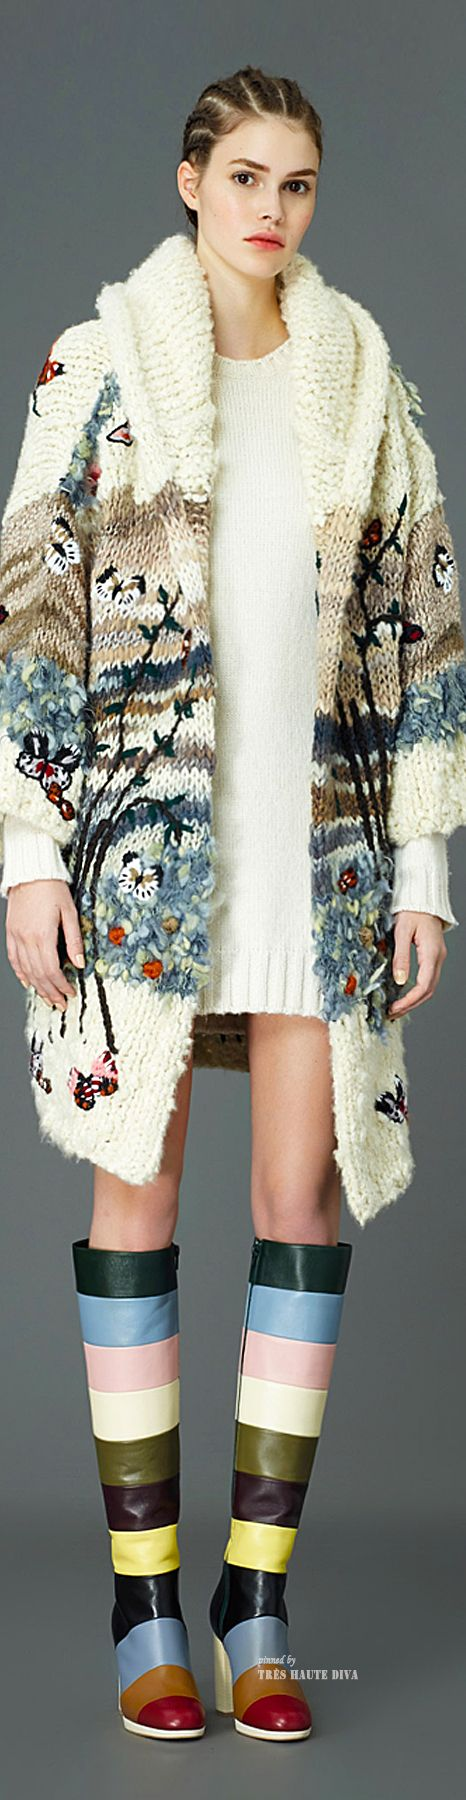 Valentino Does Stars, Stripes and Lots More for Pre-Fall